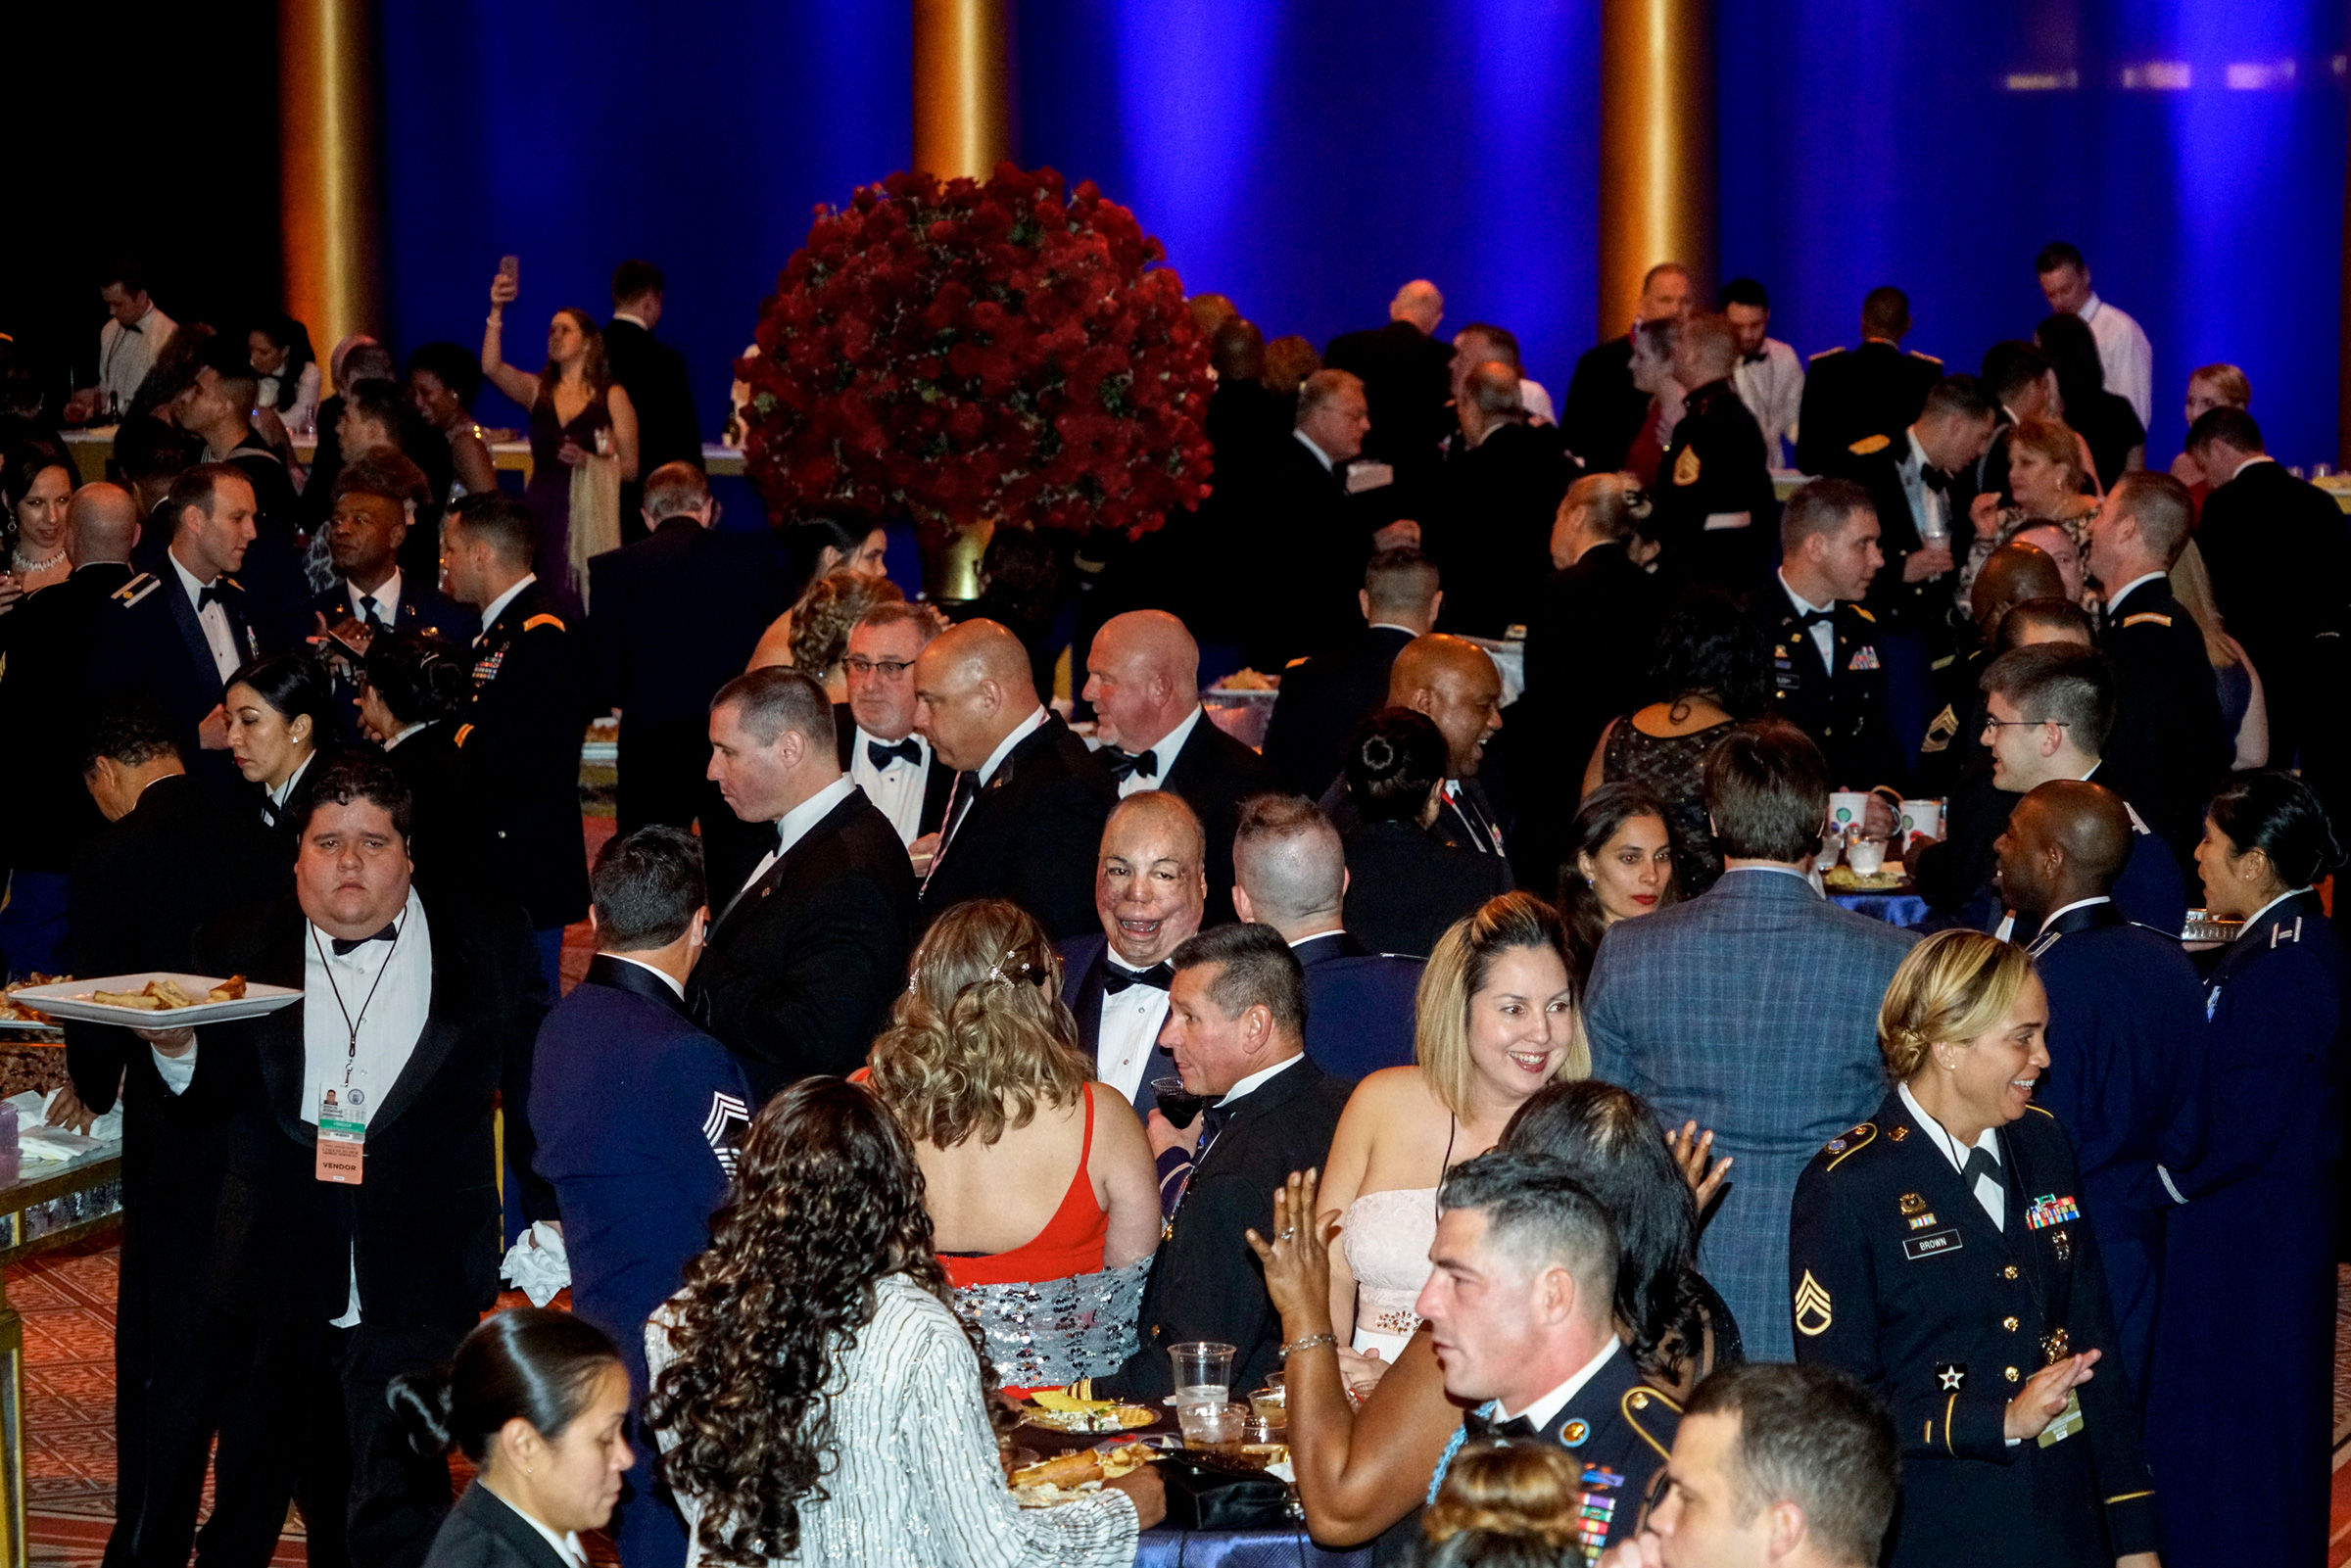 The Armed Services Ball at the National Building Museum on the eve of Donald Trump's inauguration. Washington, D.C., 2017.